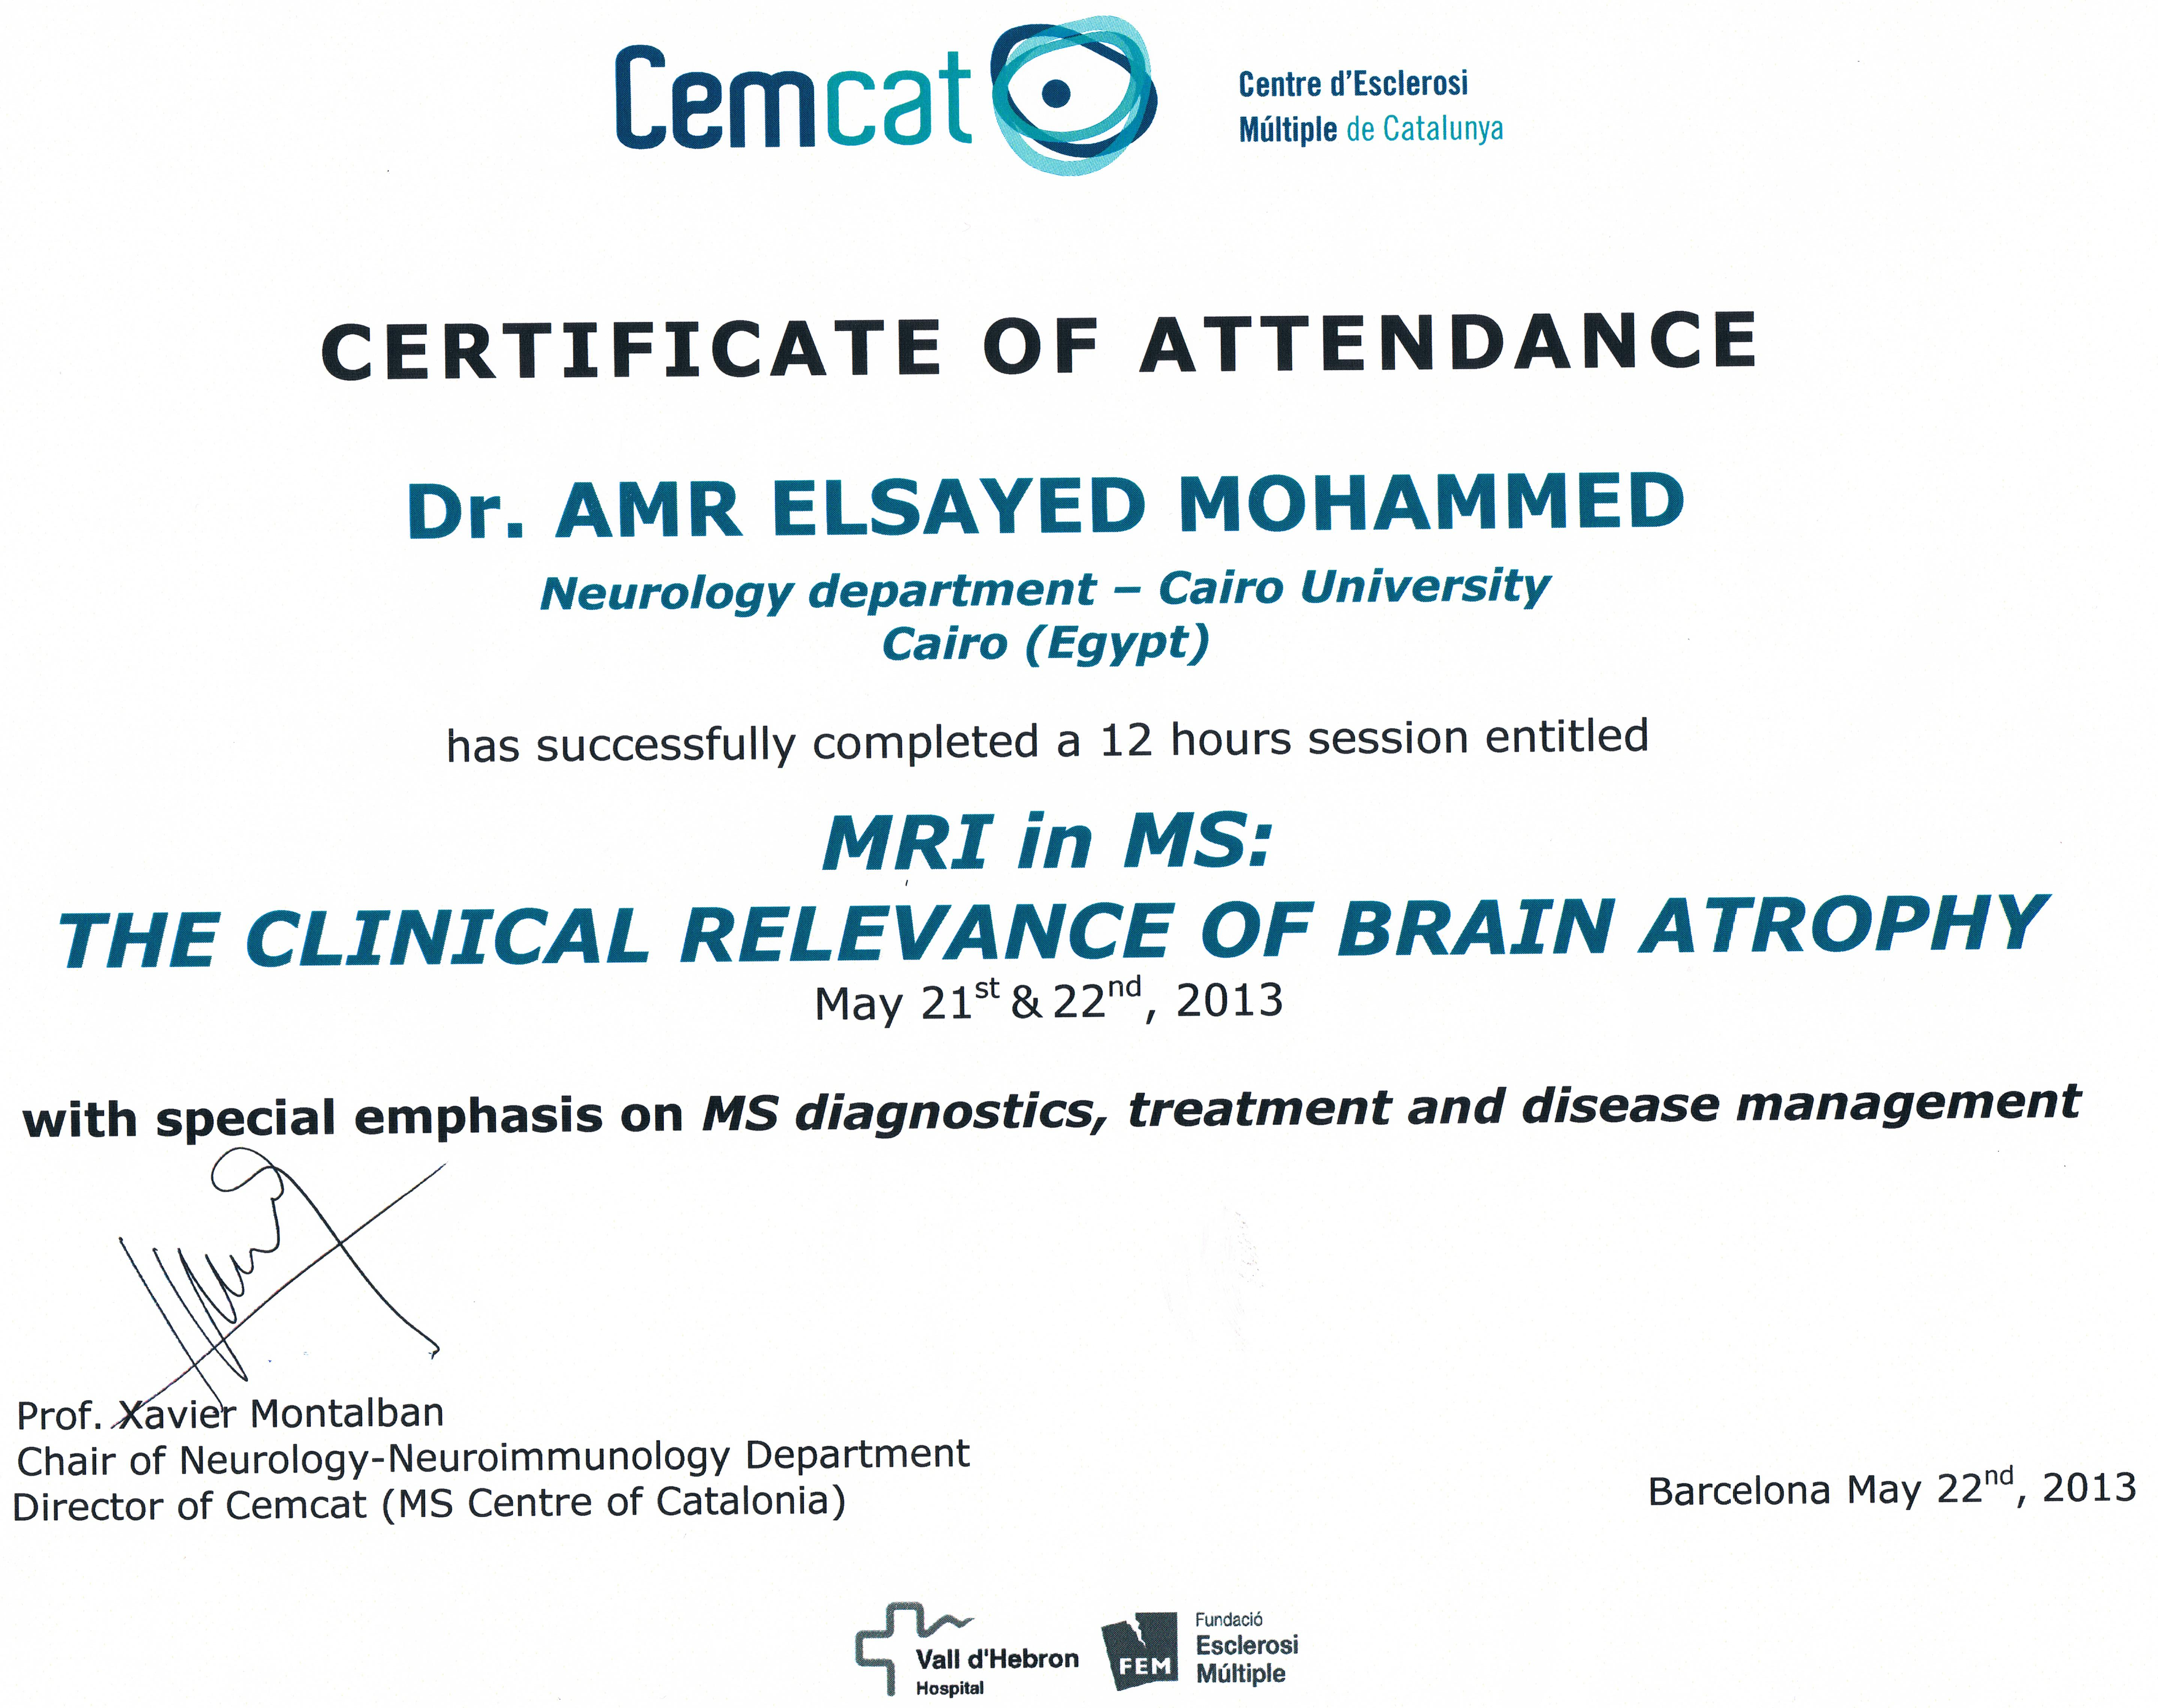 MRI Brain Atrophy